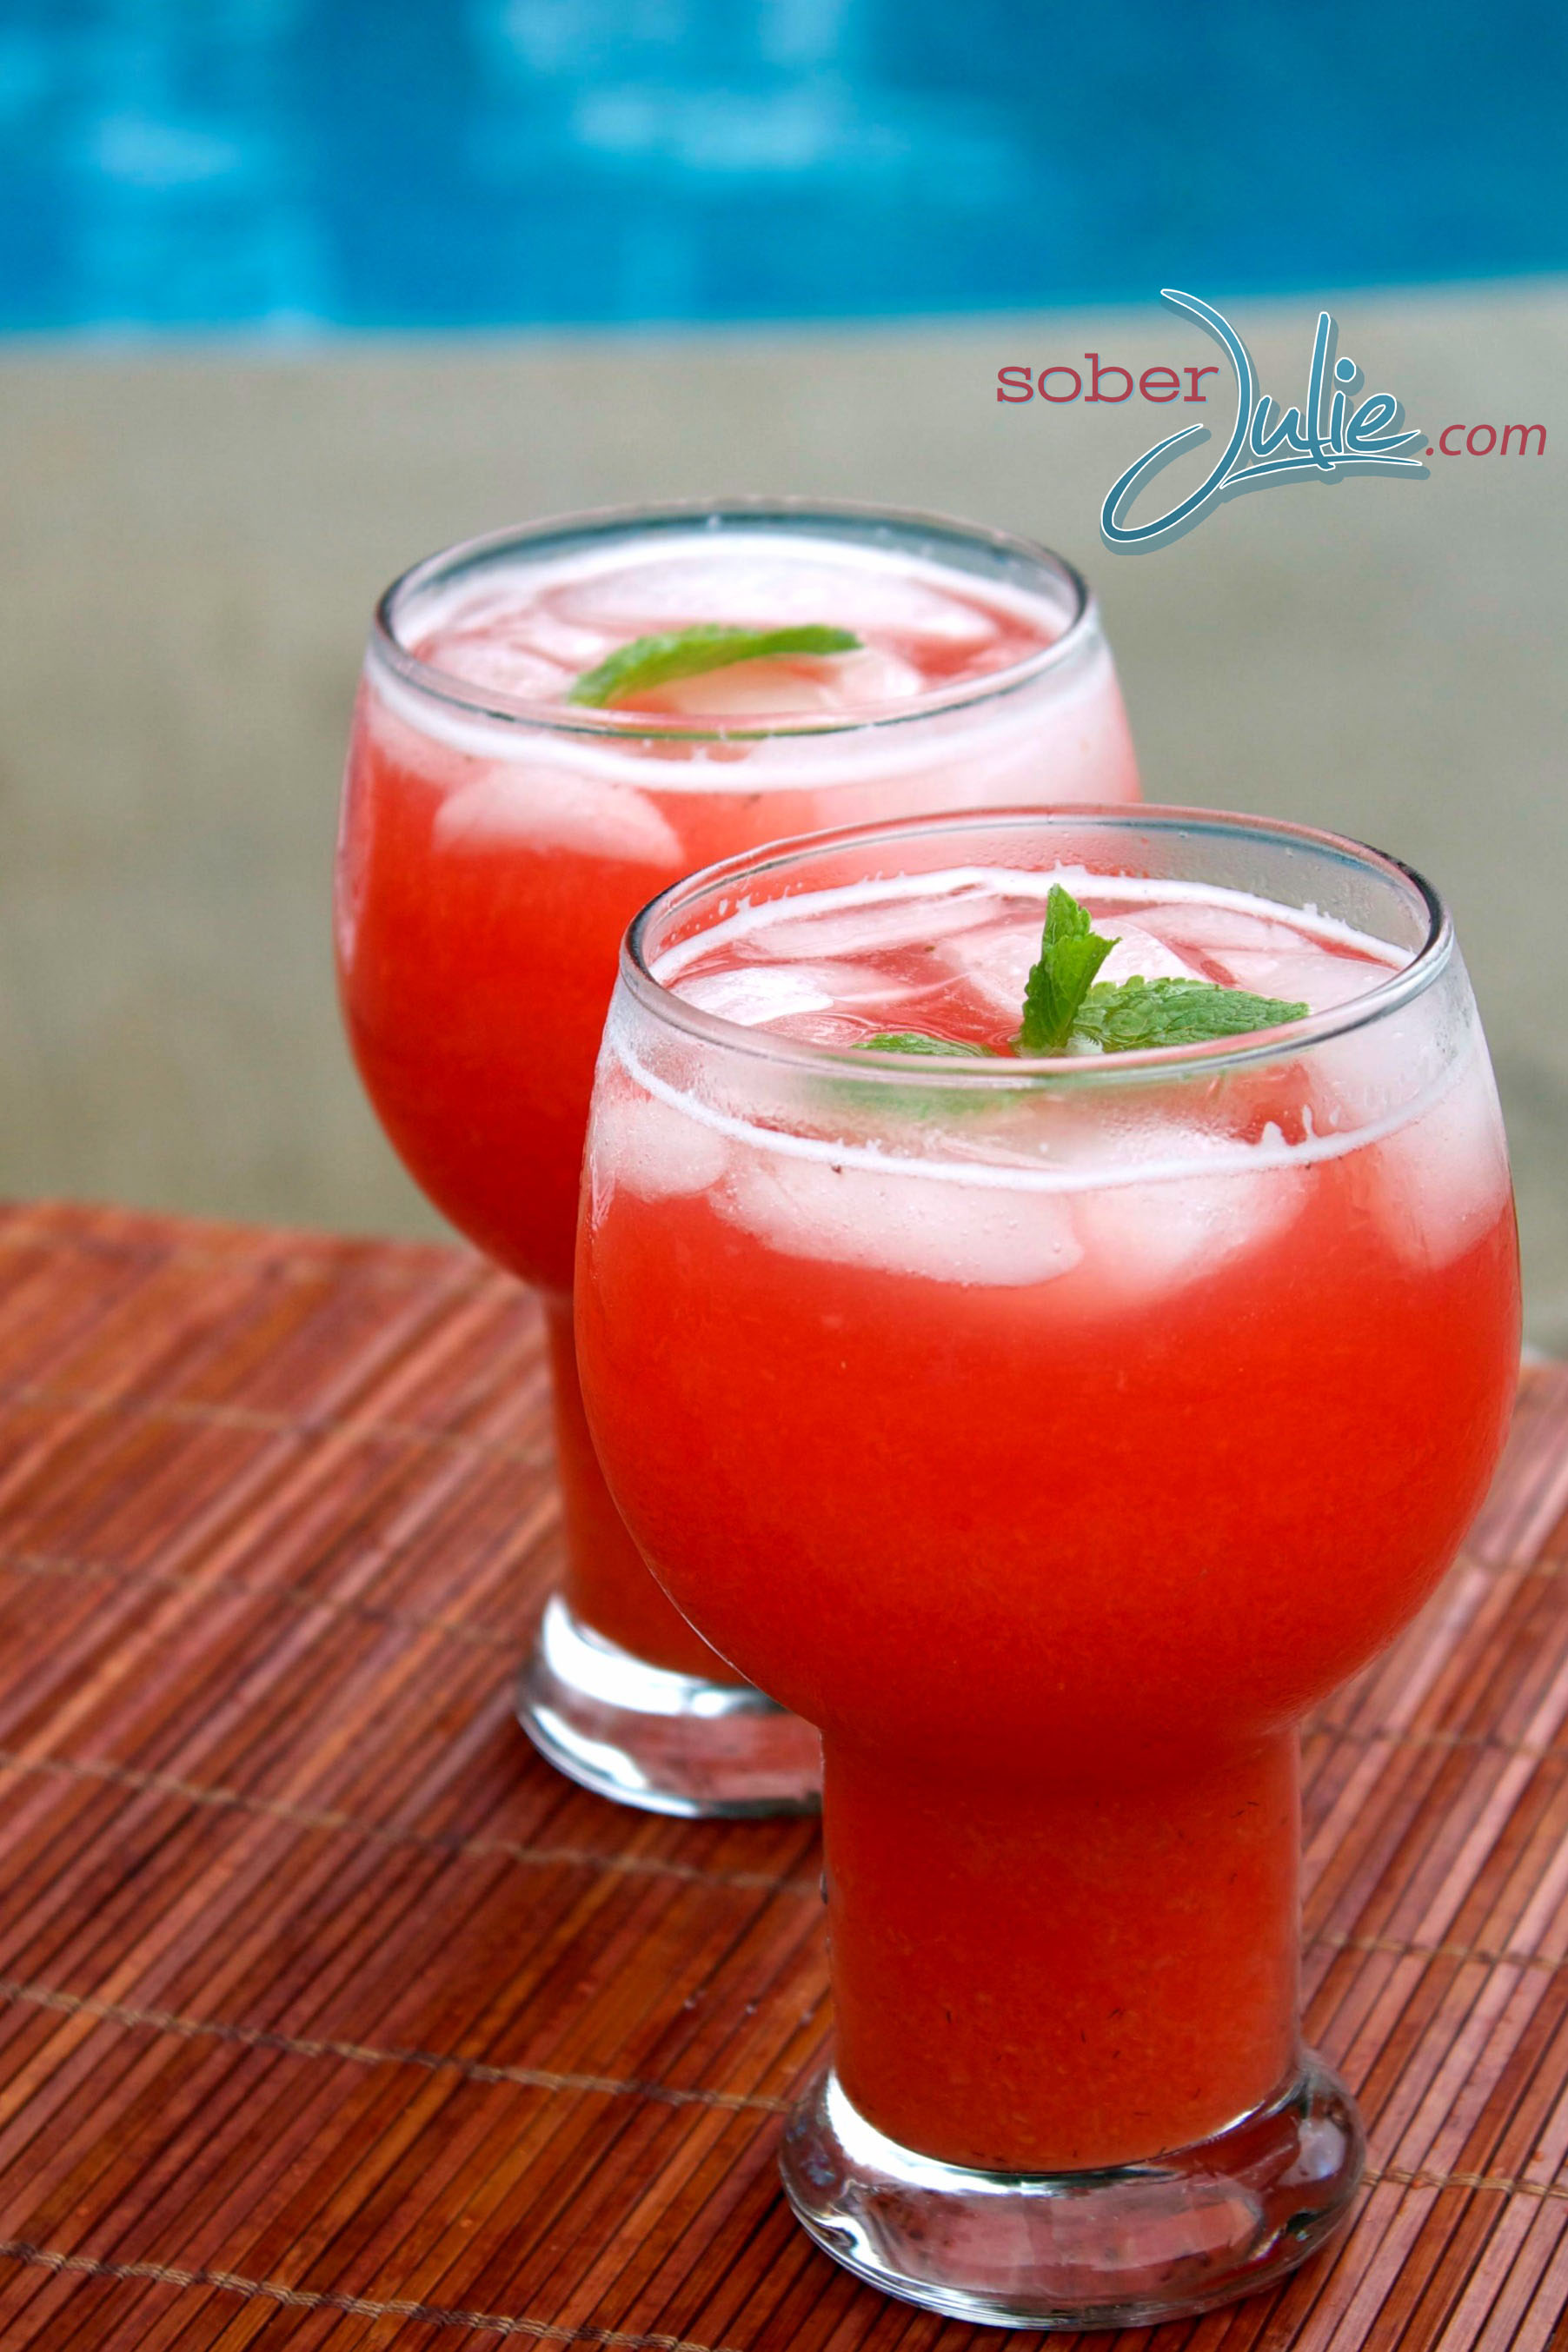 Strawberry Rhubarb Lemonade Recipe - Sober Julie